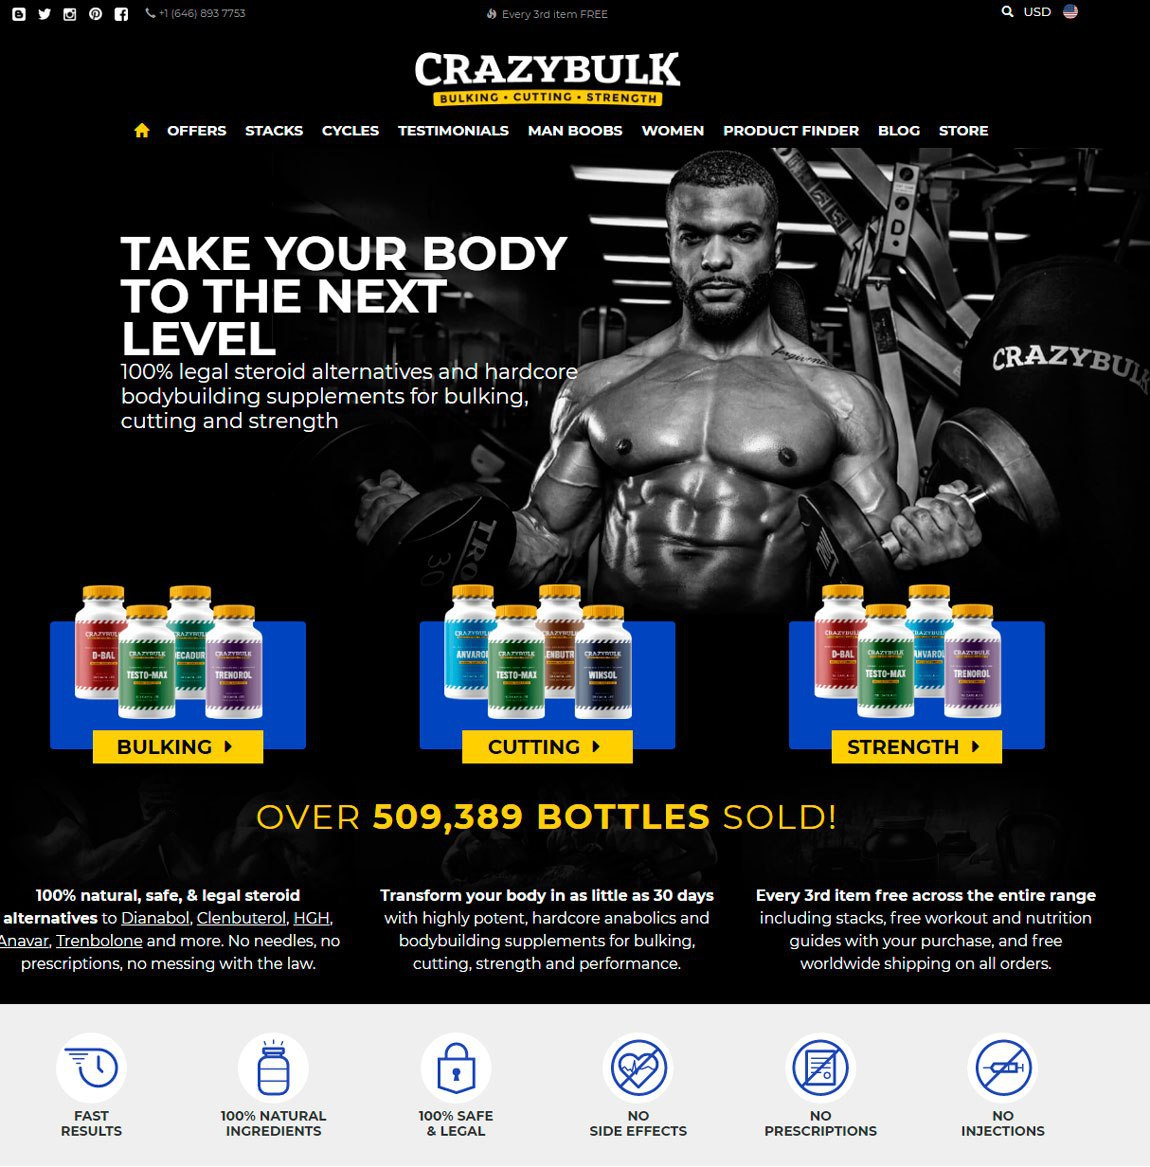 Crazy bulk bodybuilding